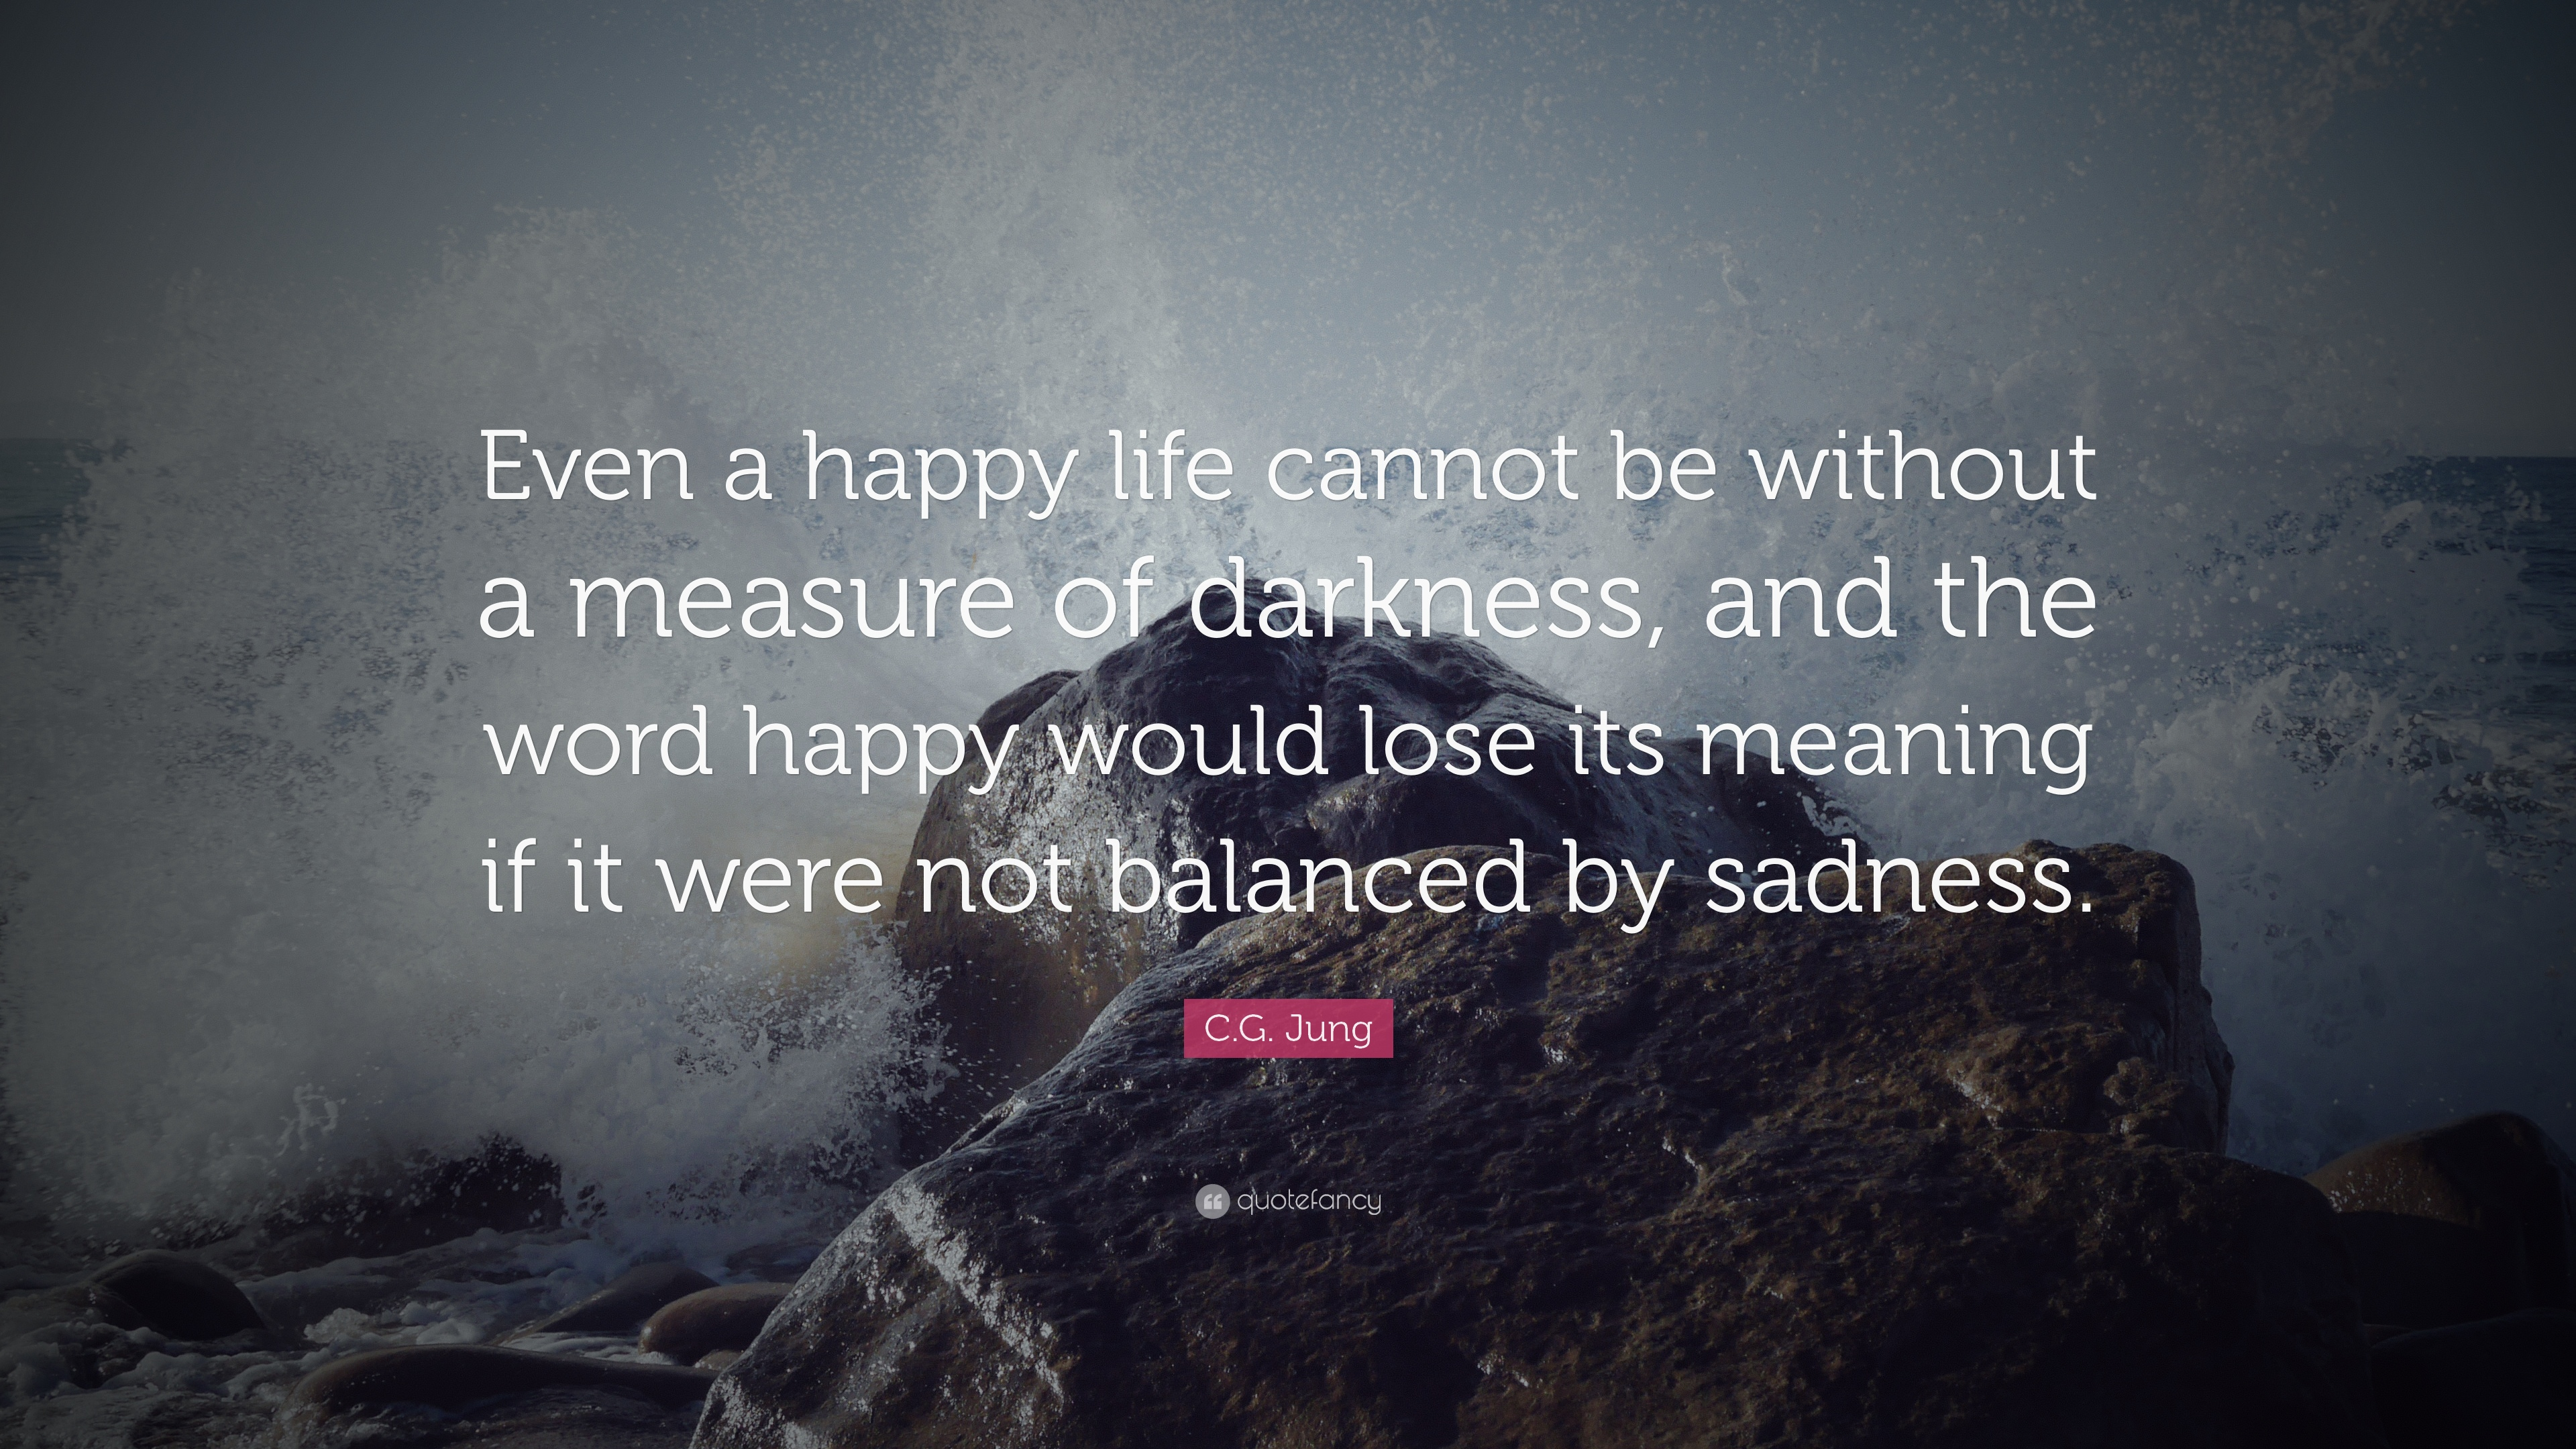 Cg Jung Quote: '� Even A Happy Life Cannot Be Without A Measure Of